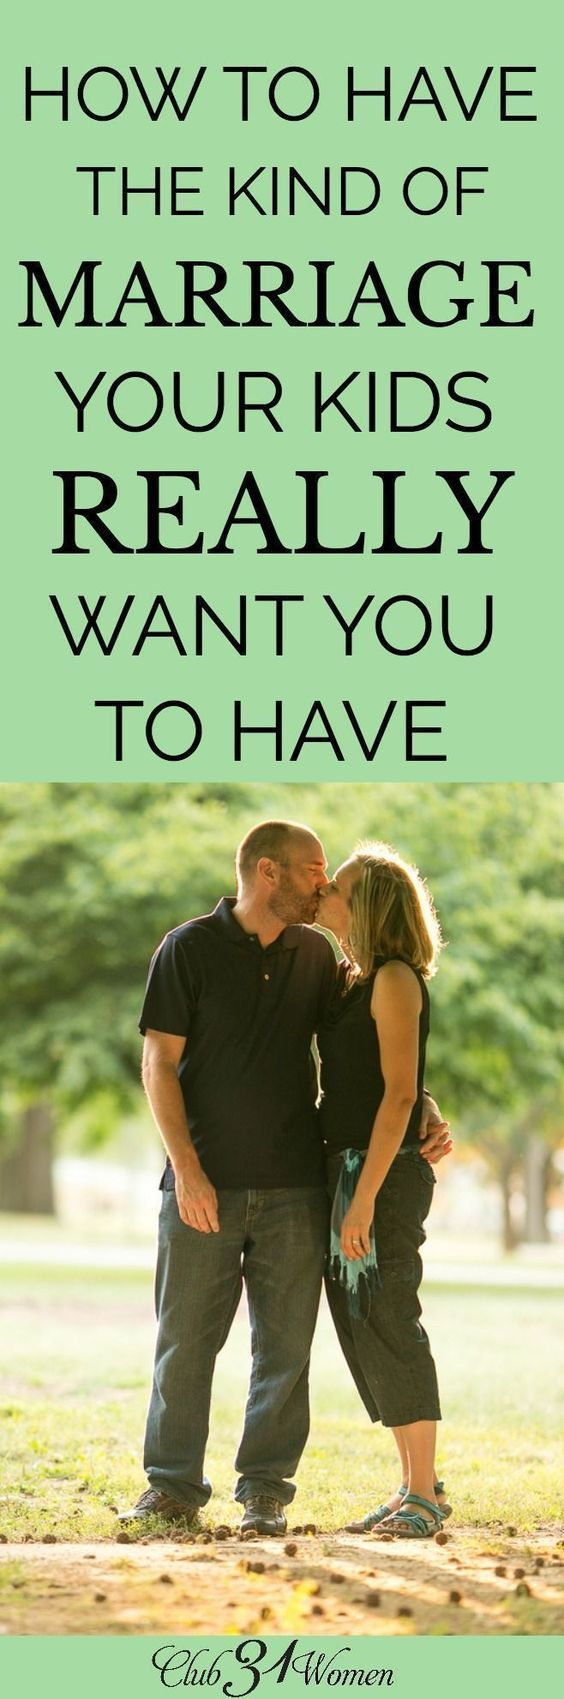 Marriages with passion have become rare, even among Christians. But if we want to teach our children how to love others well, it begins in our marriage. How to Have the Kind of Marriage Your Kids Really Want You To Have Club31Women